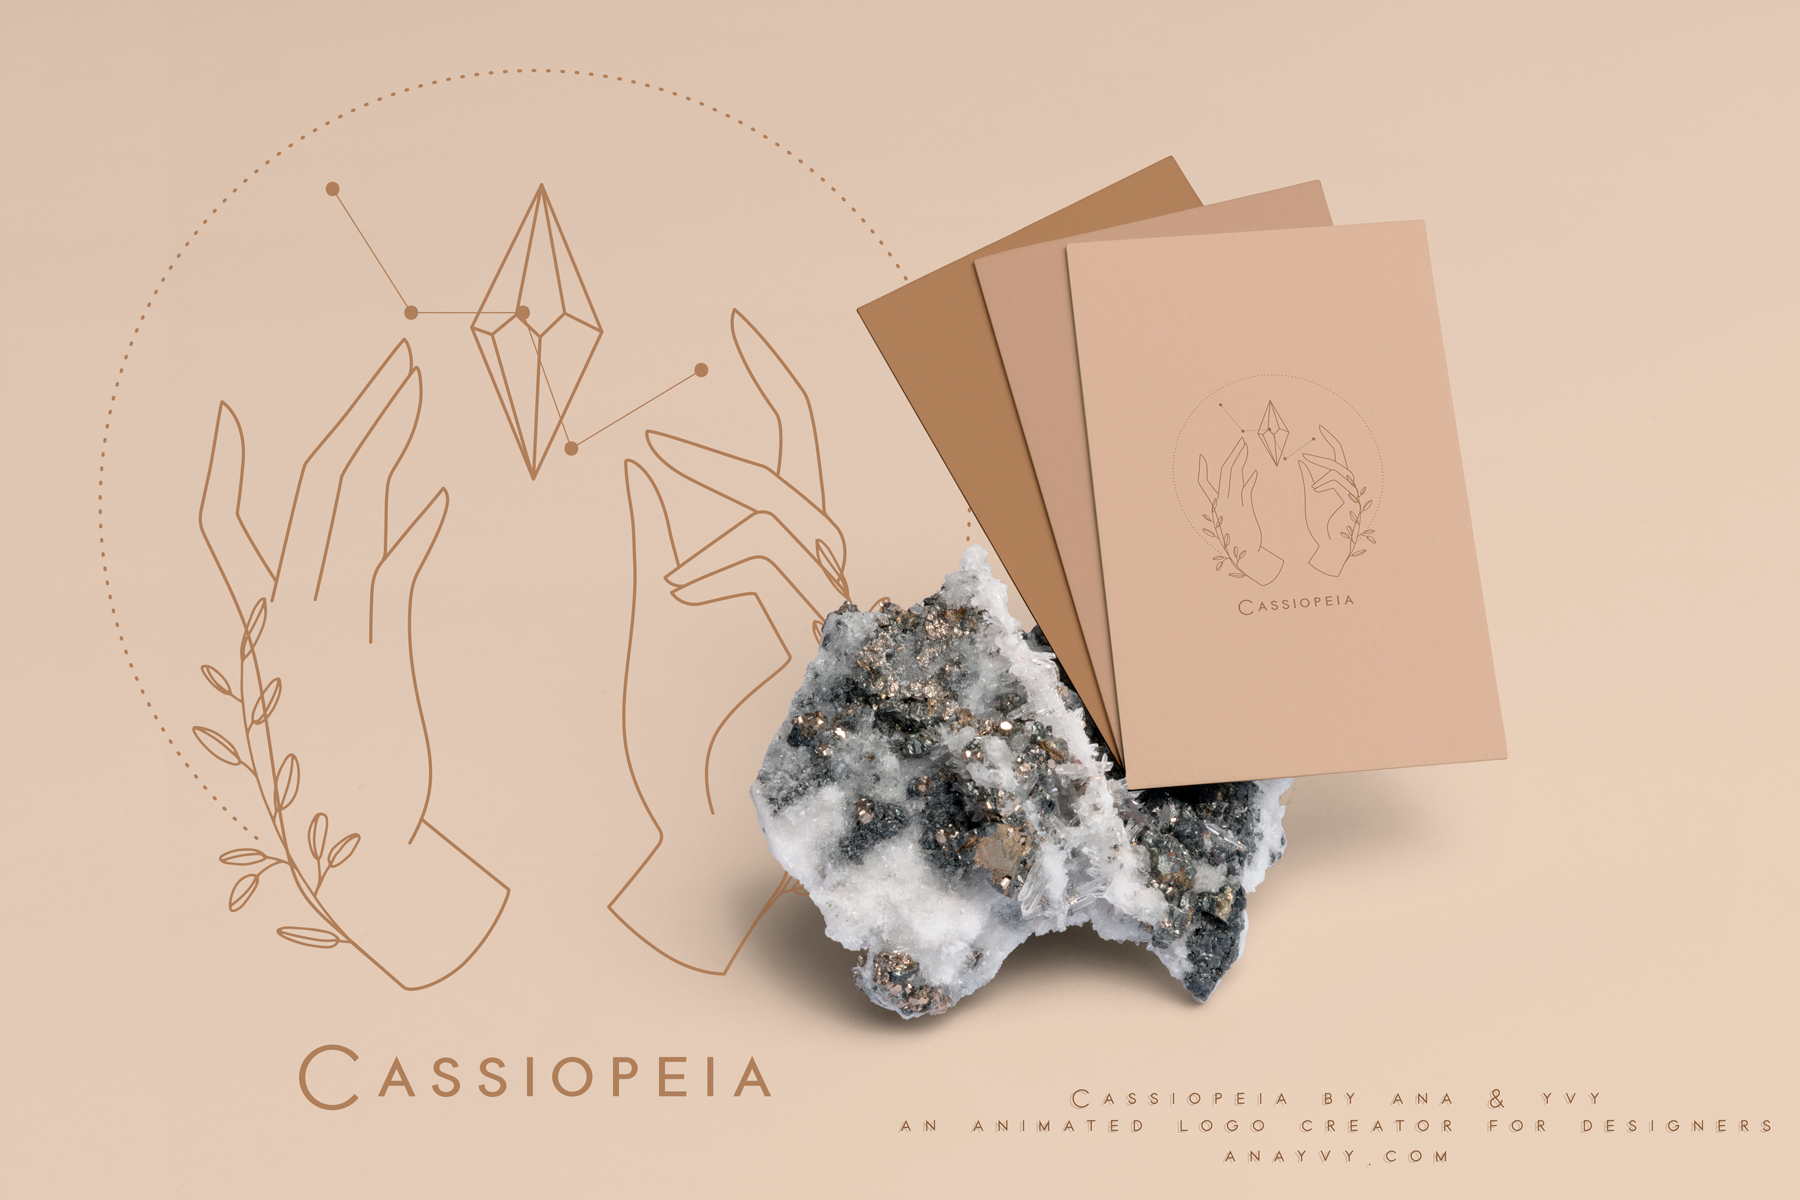 Cassiopeia-logo-design-animation-anayvy-motion-vintage-hand-greenery-apothecary-businesscards-2